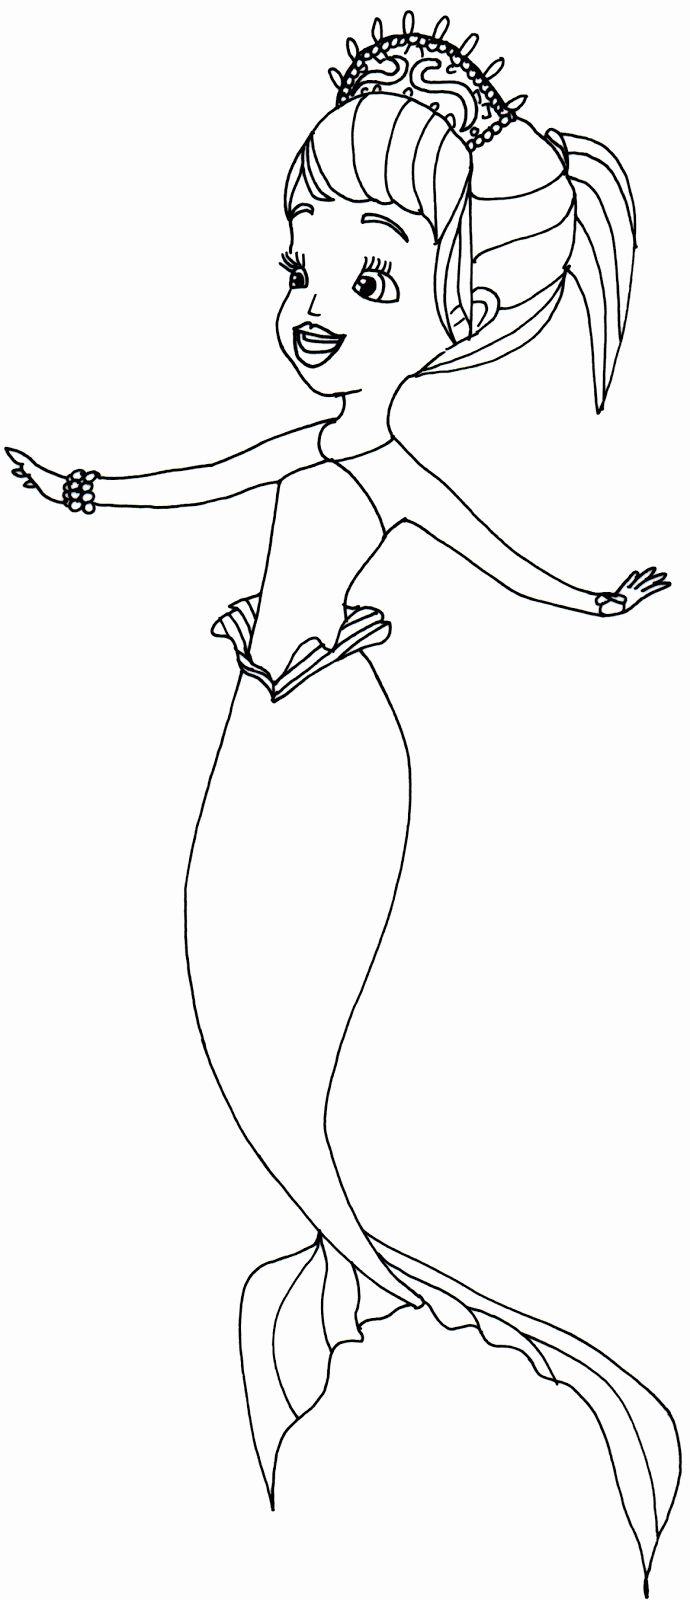 Sophia The First Coloring Book Lovely Sofia Coloring Pages Bestofcoloring In 2020 Mermaid Coloring Pages Princess Coloring Pages Coloring Books